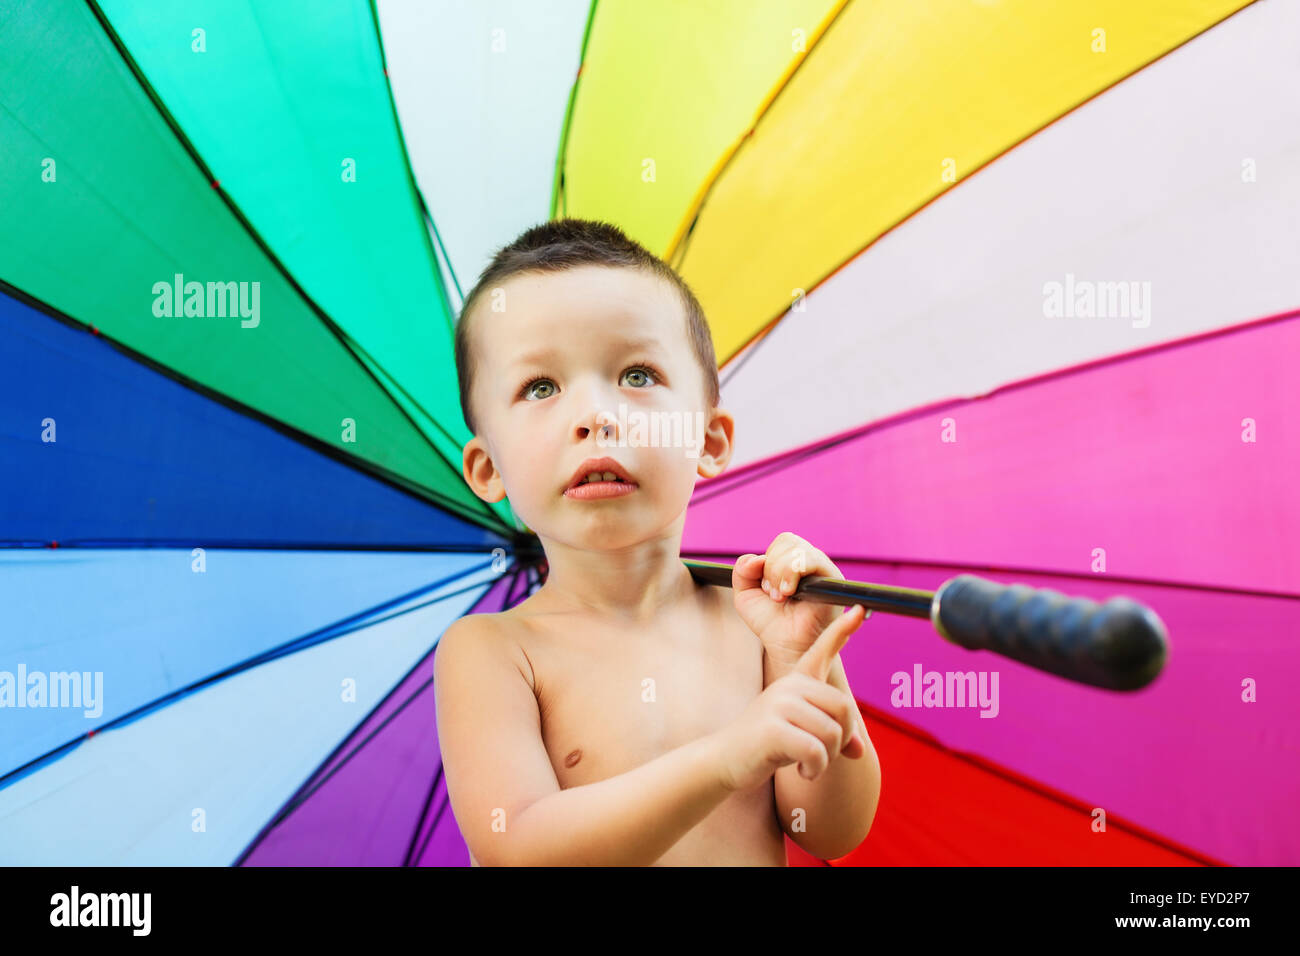 Adorable portrait of happy baby boy holding in hands and turning big umbrella with vibrant rainbow colors pattern. Stock Photo